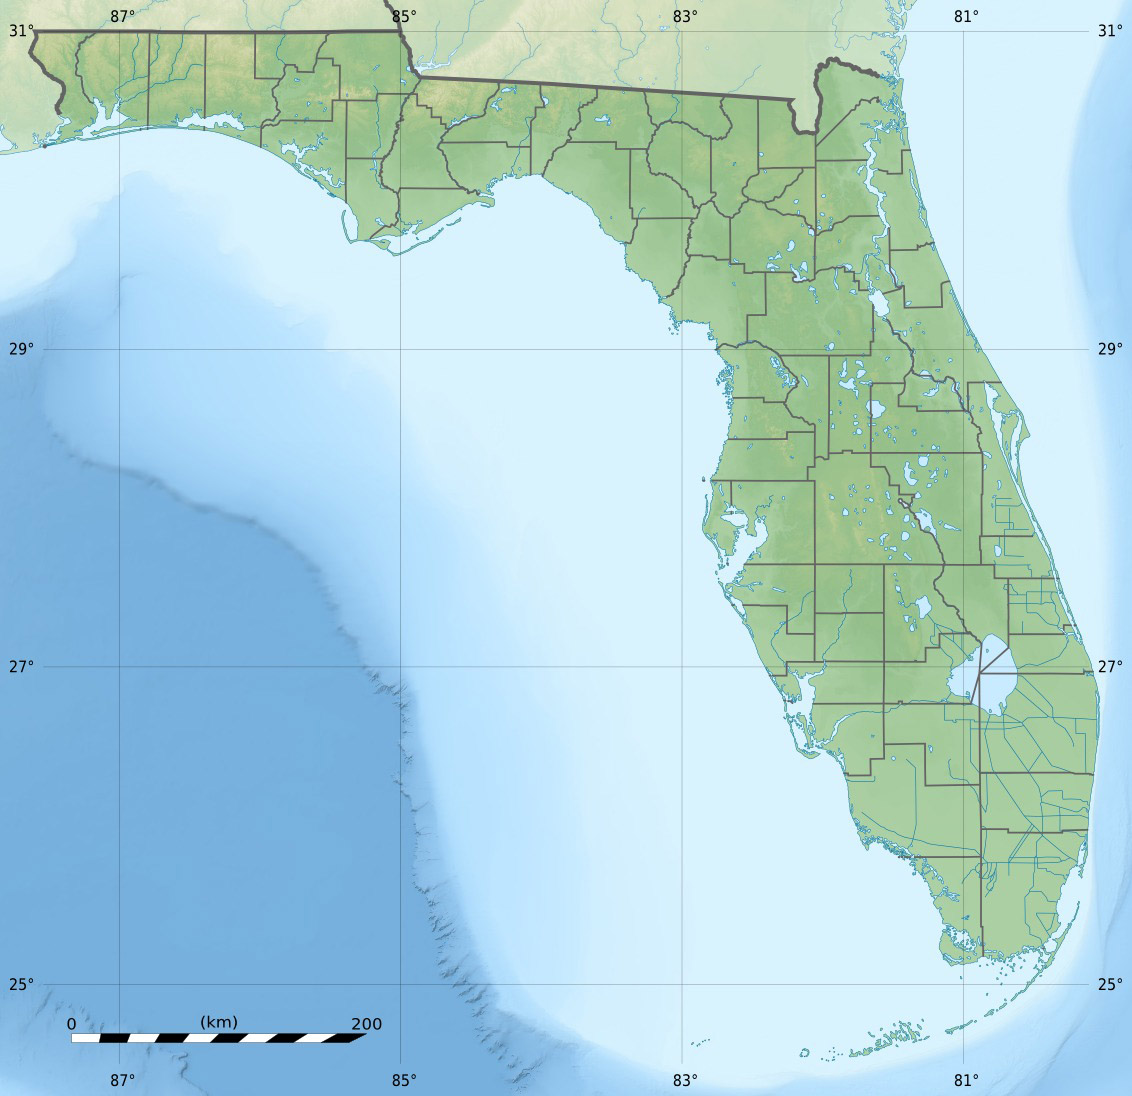 FileUSA Florida relief location mapjpg Wikimedia Commons